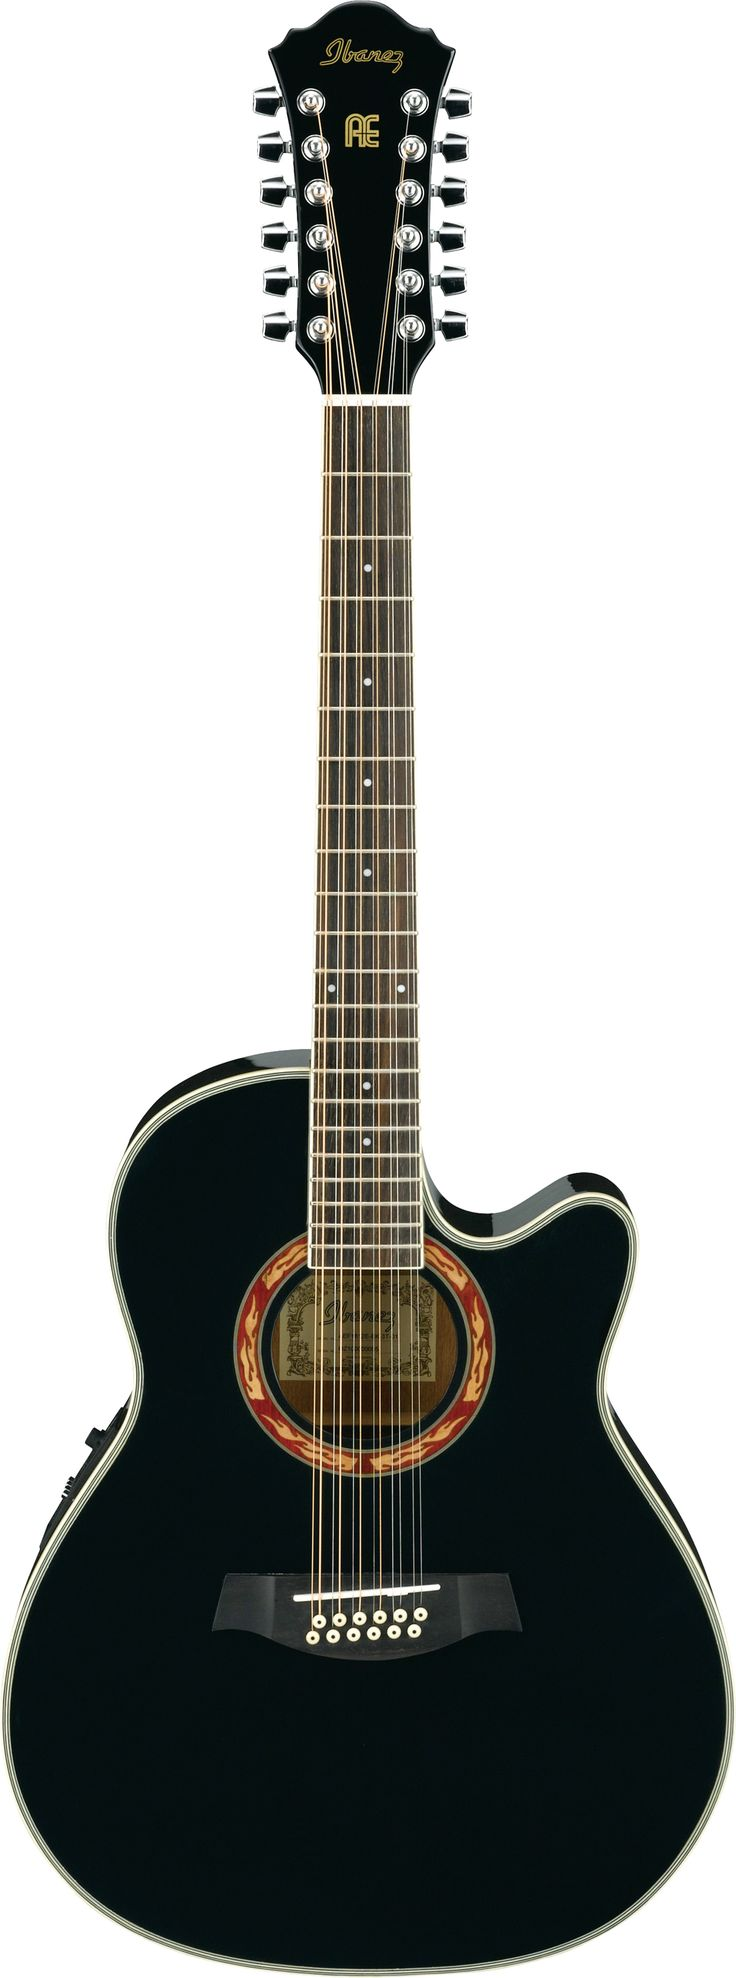 17 Best ideas about 12 String Acoustic Guitar on Pinterest.